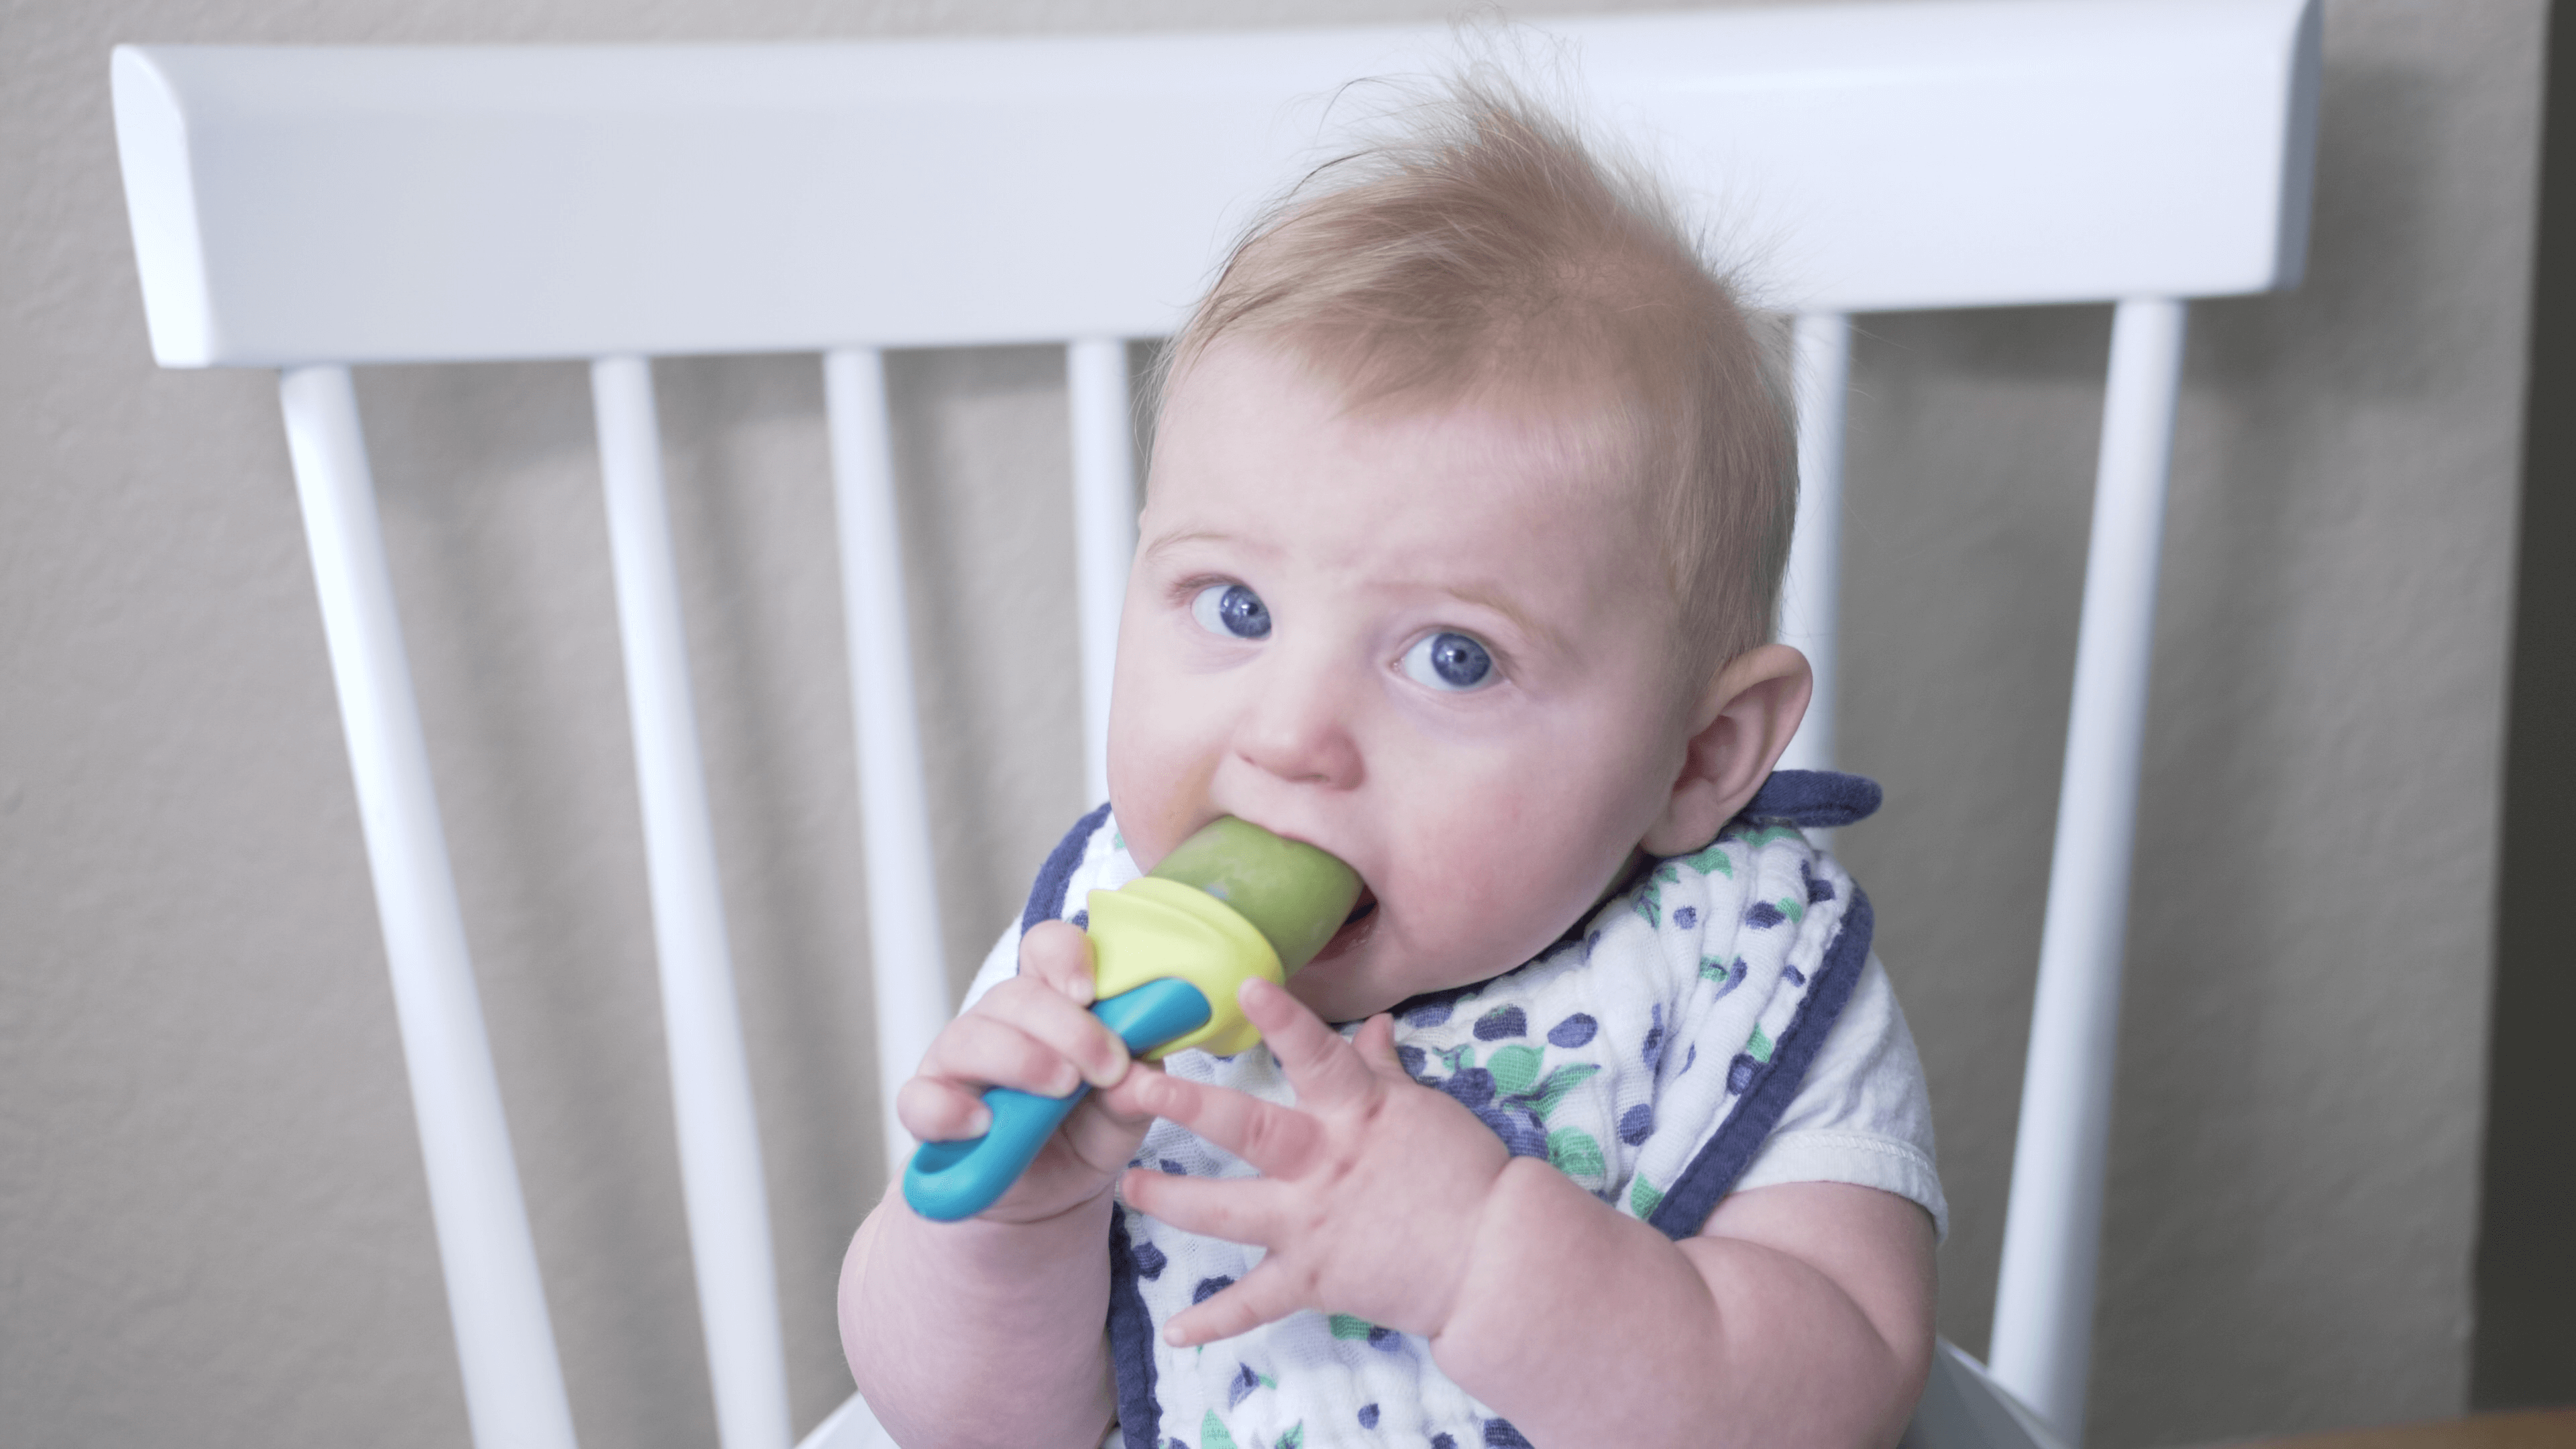 With the latest research suggesting early peanut introduction, we've rounded up 8 ways on how to feed peanut butter to baby.